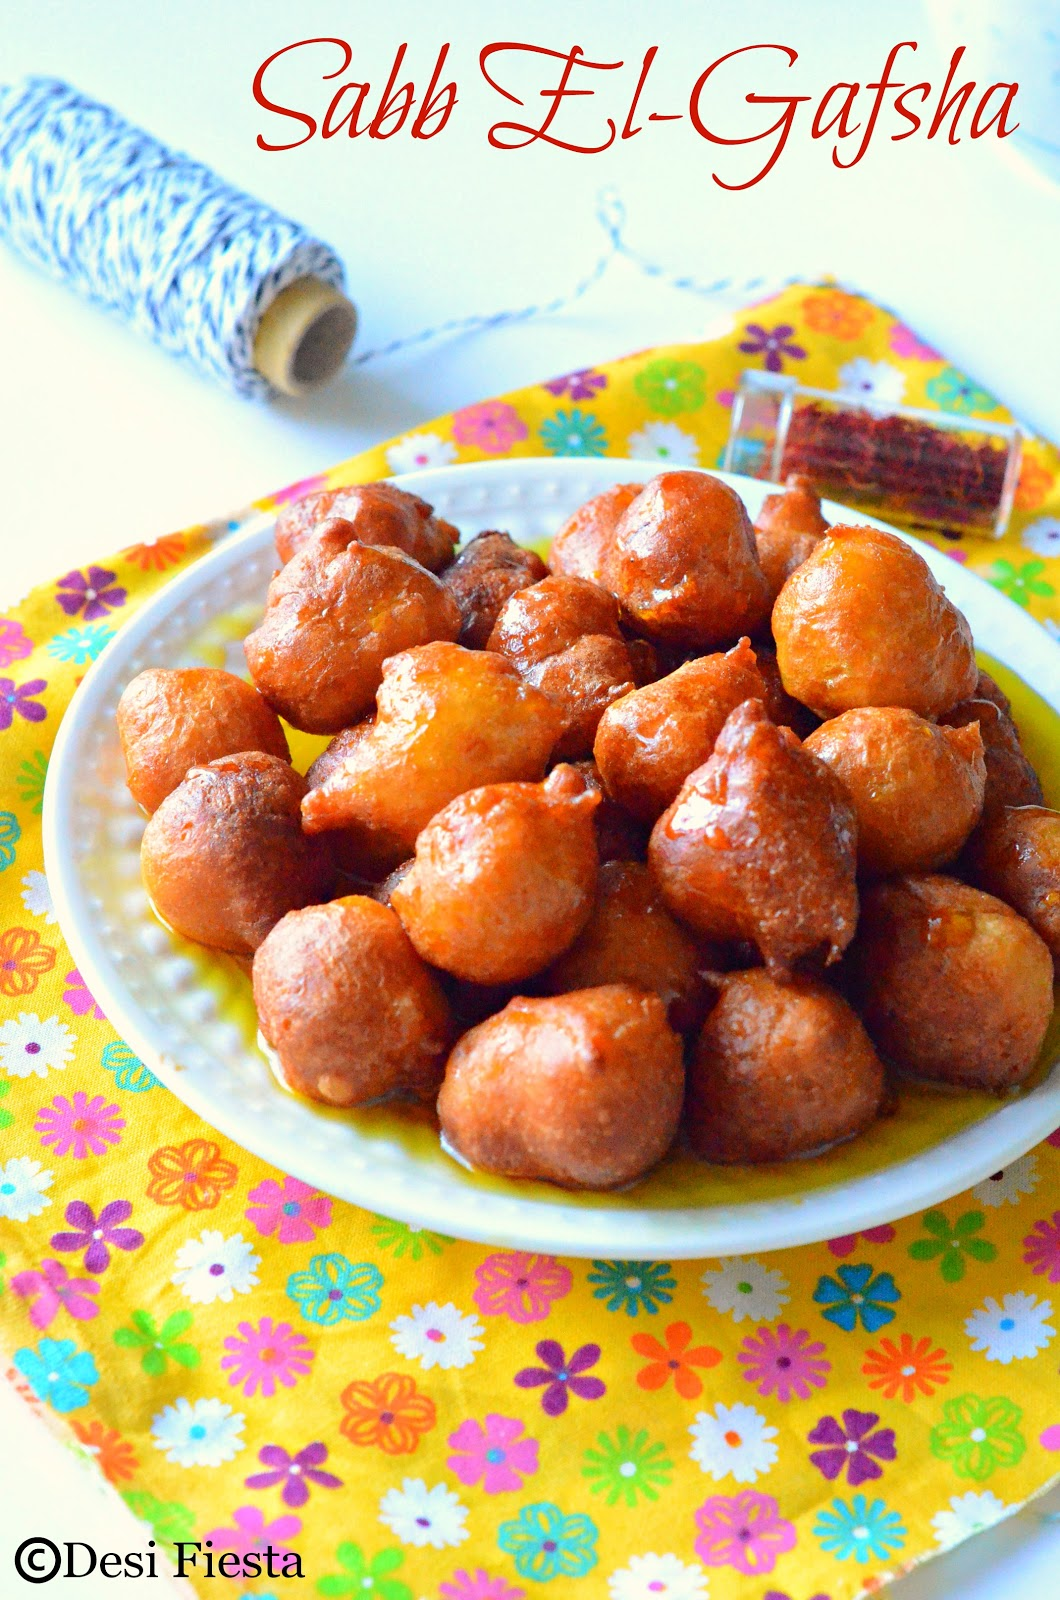 Fried fritters recipes